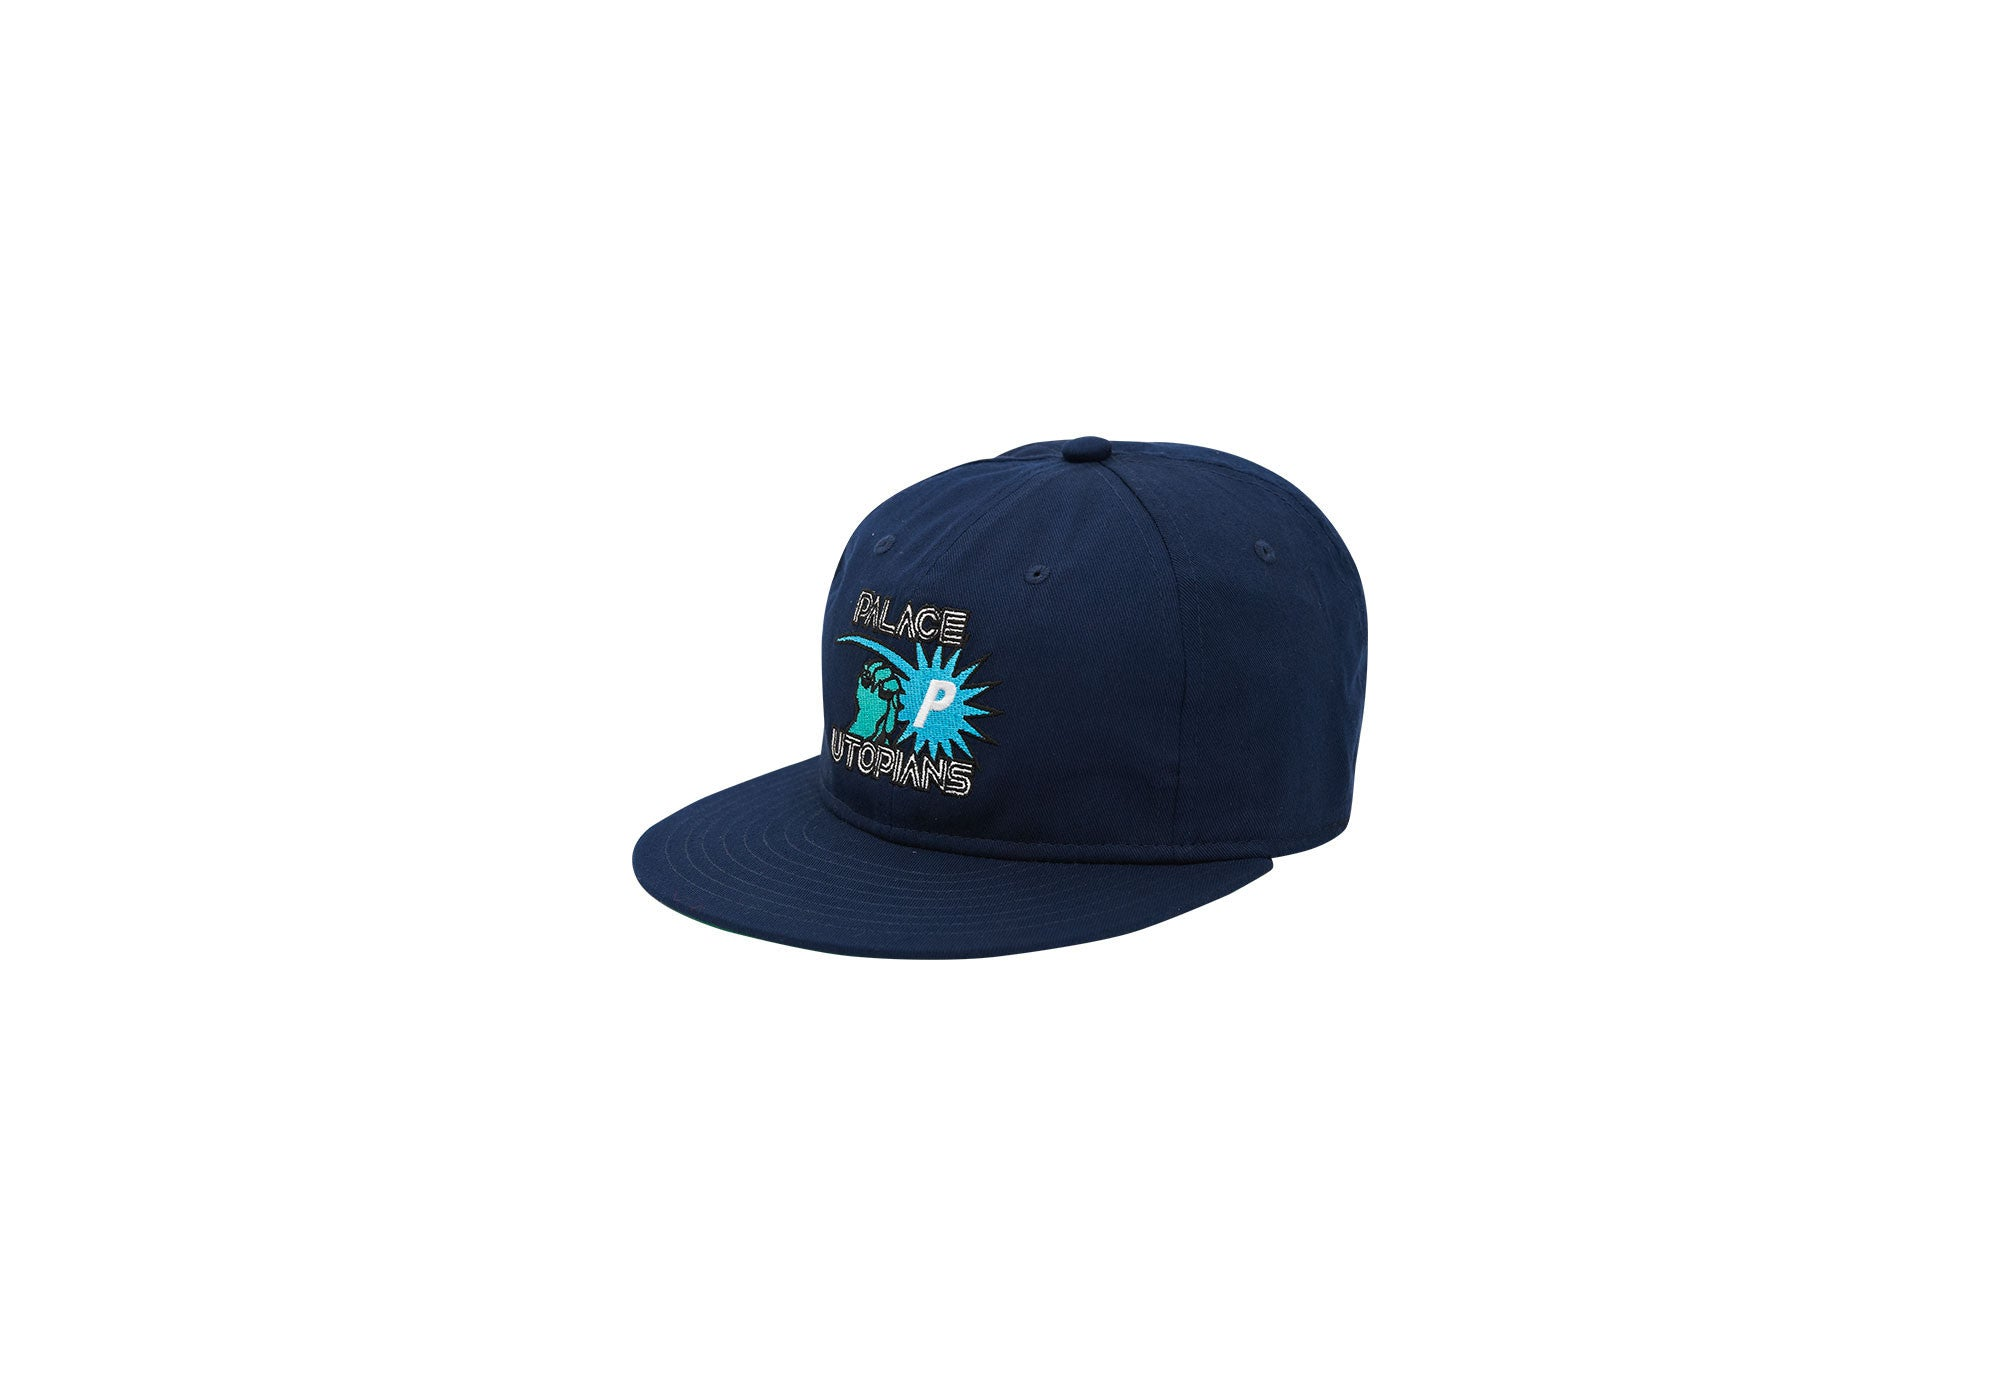 PALACE HANDY UTOPIANS 6-PANEL NAVY